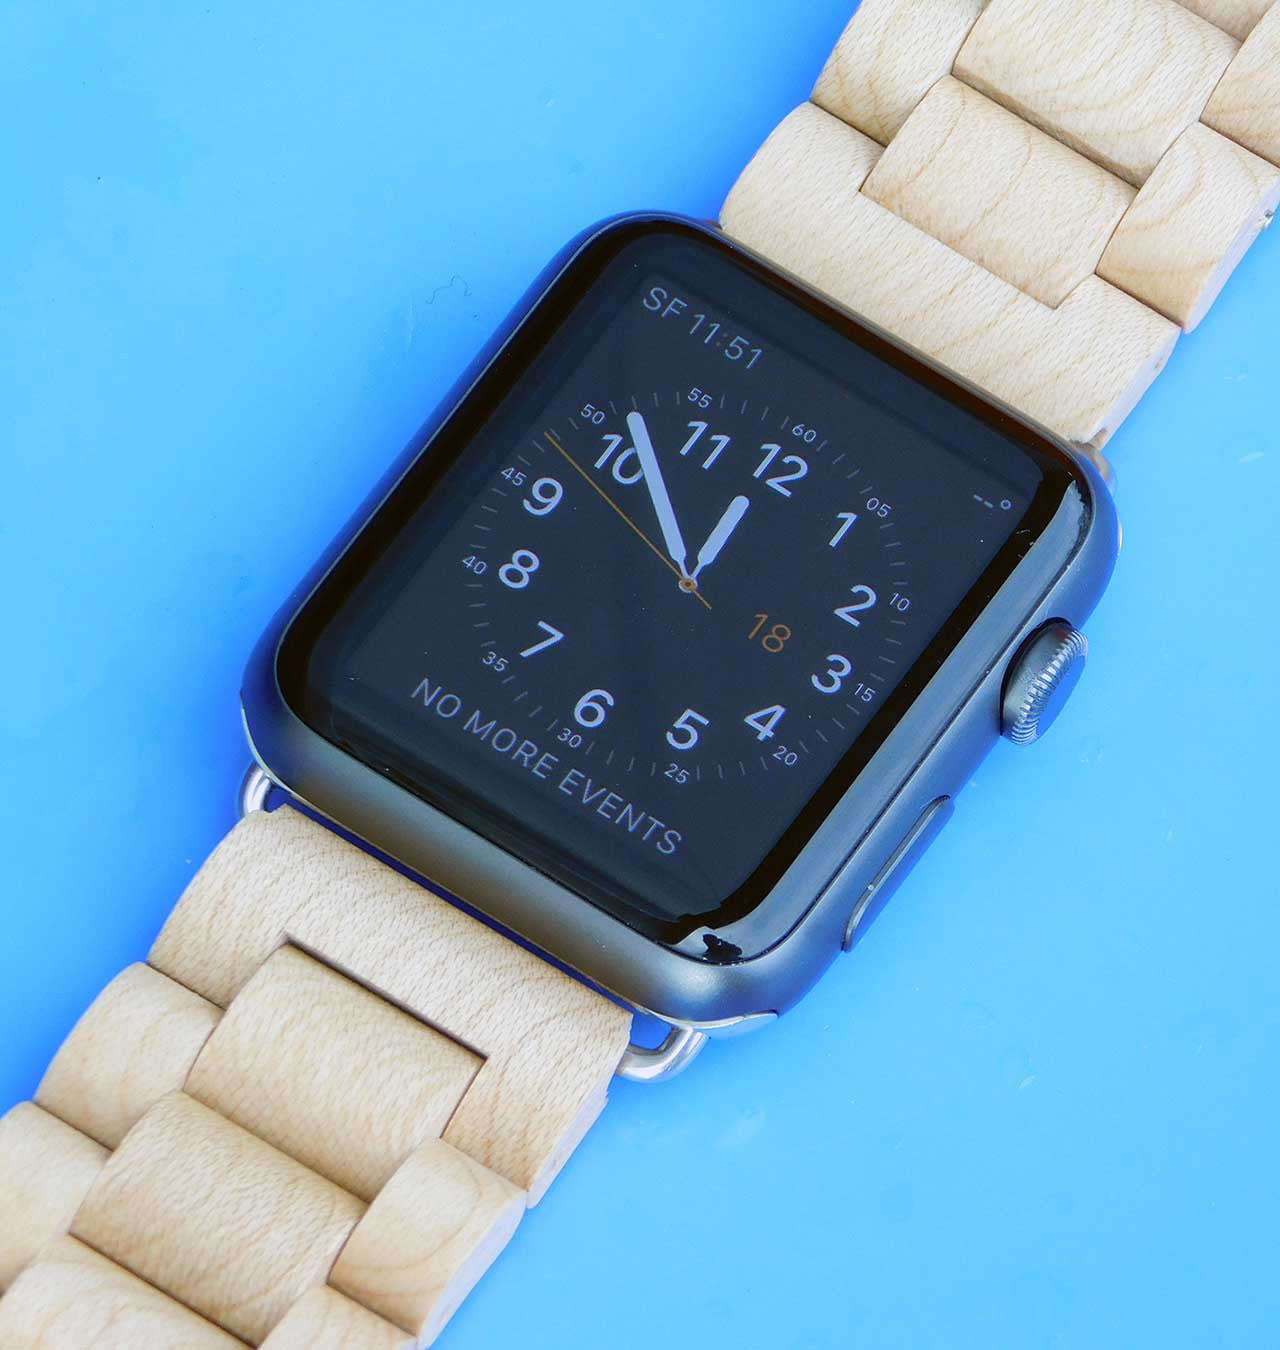 Apple Watch - Canadian Maple